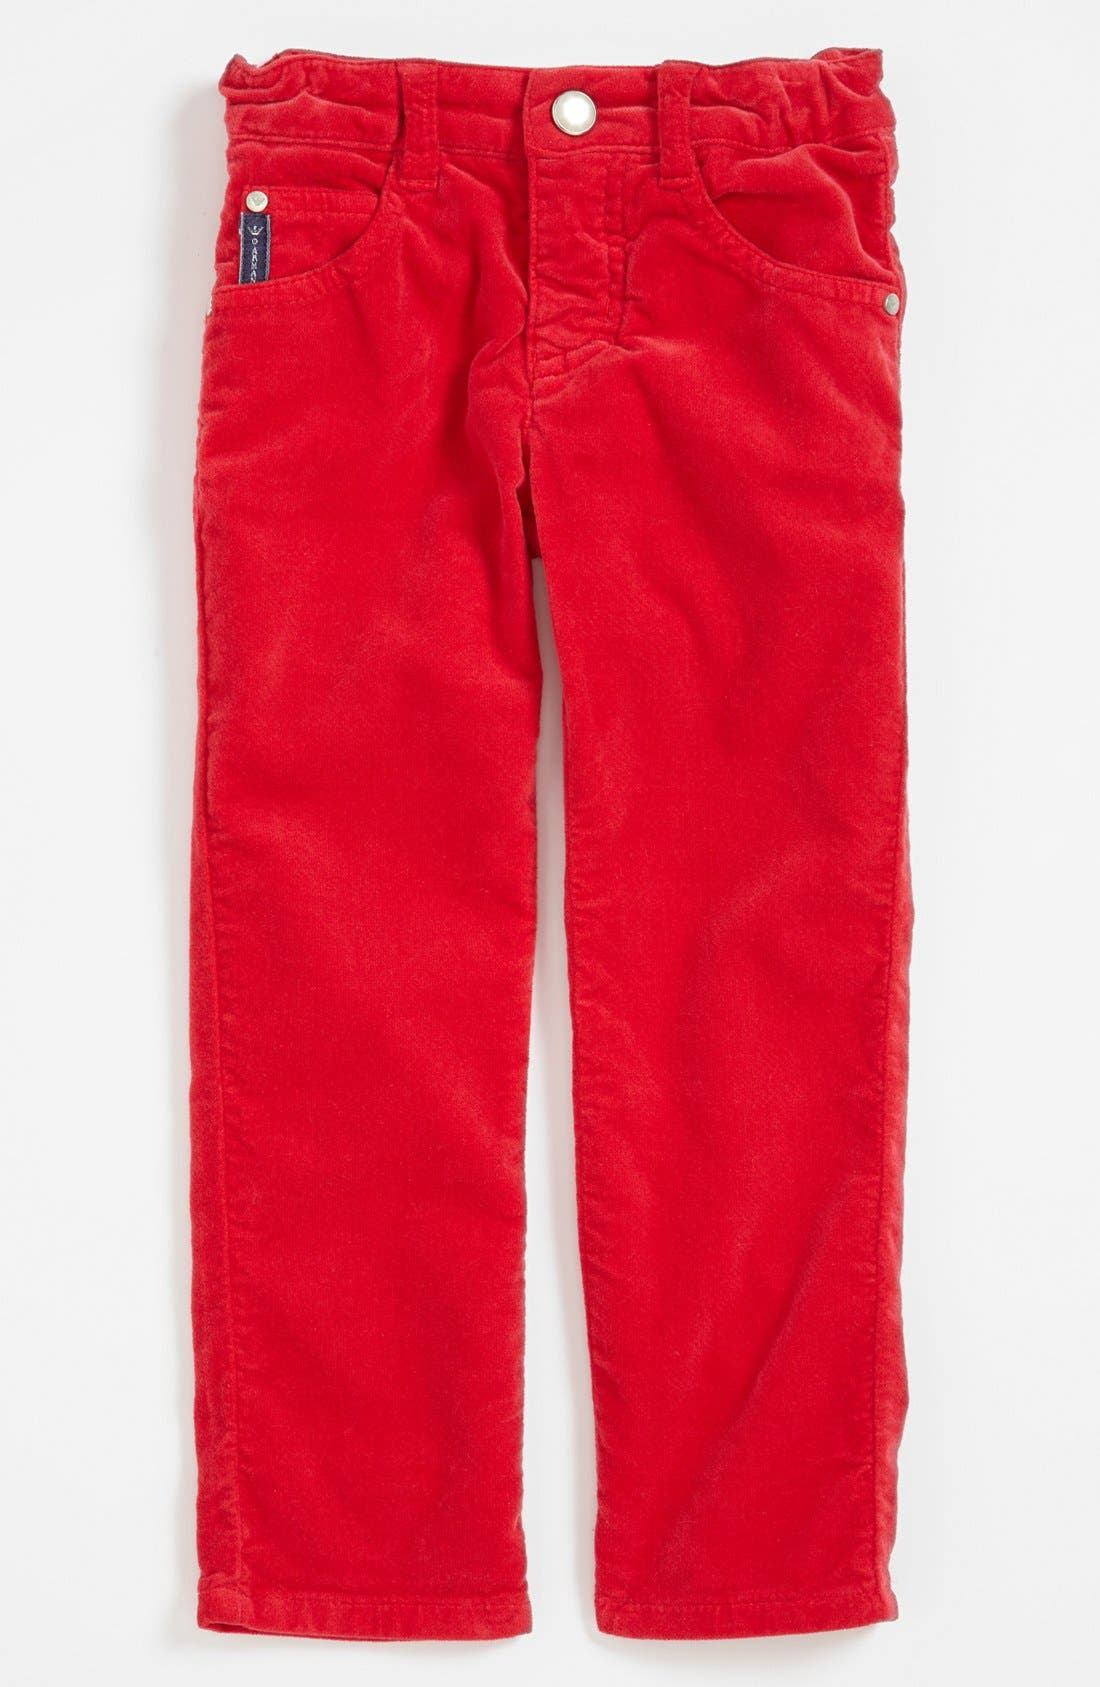 Main Image - Armani Junior Corduroy Pants (Toddler Girls, Little Girls & Big Girls)